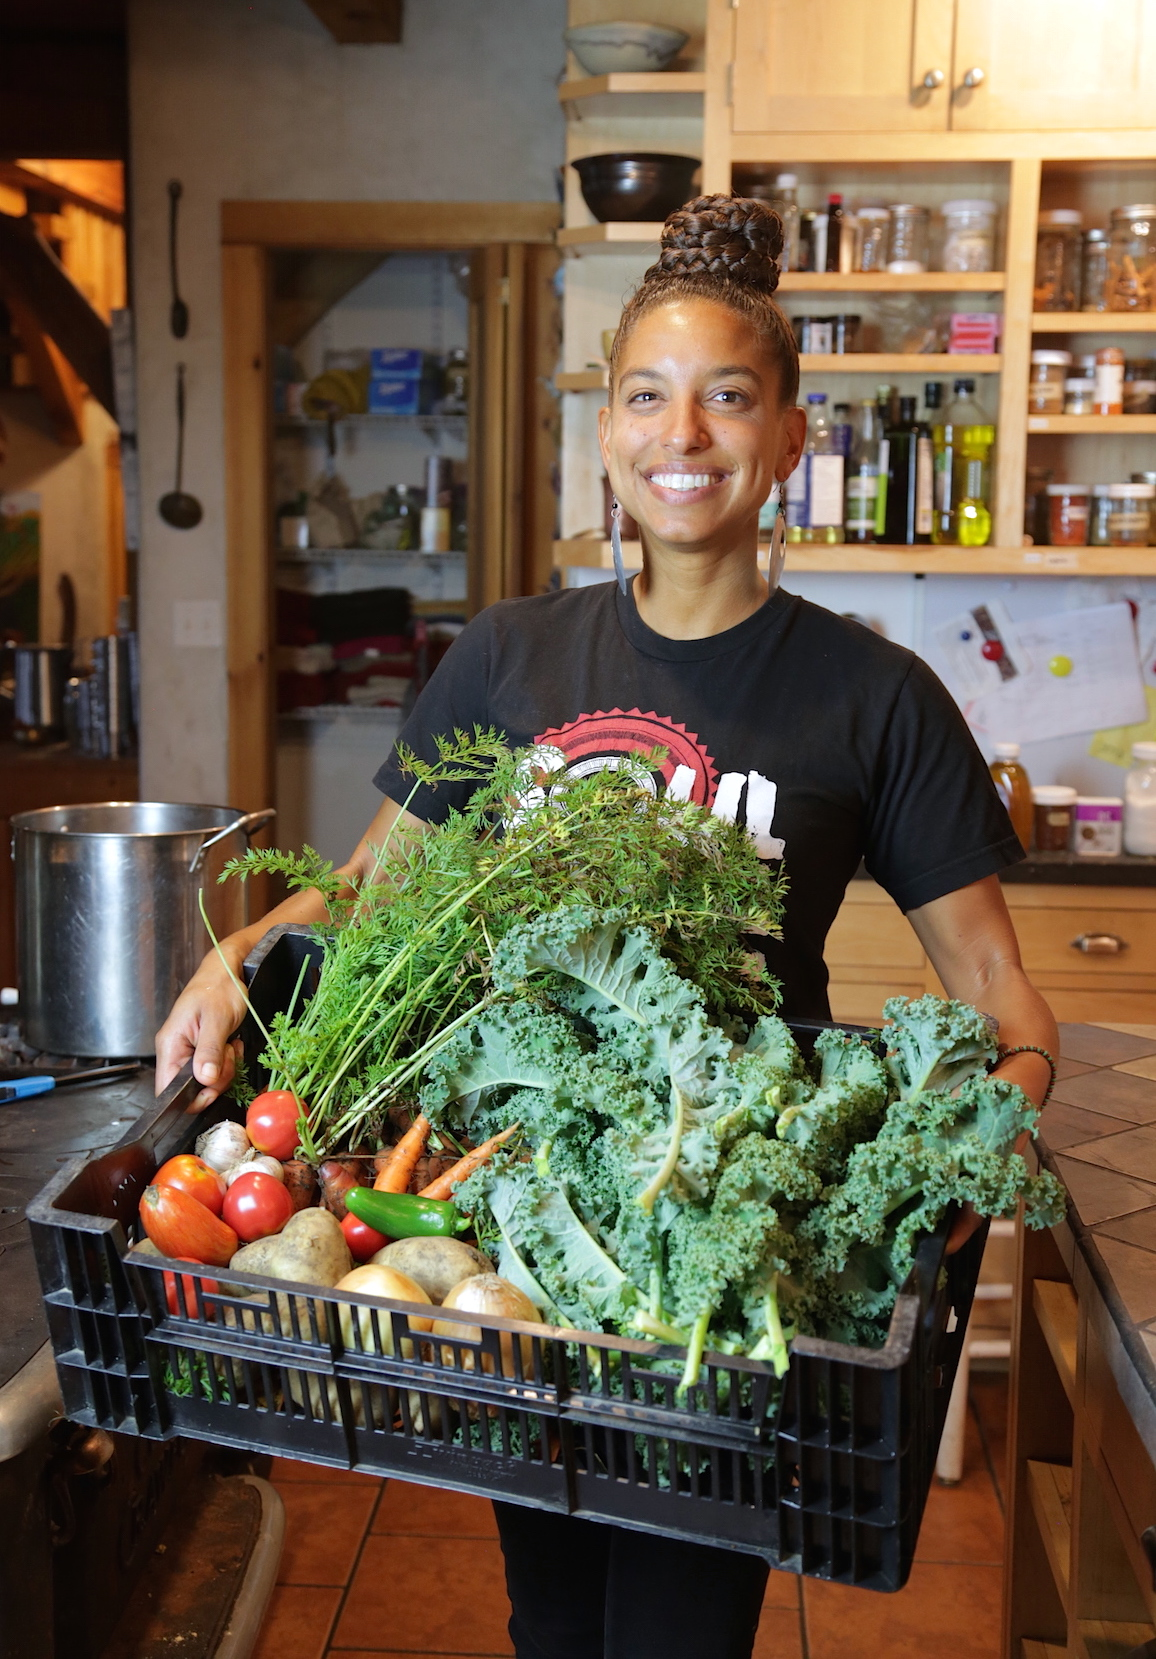 Leah Penniman holding vegetables